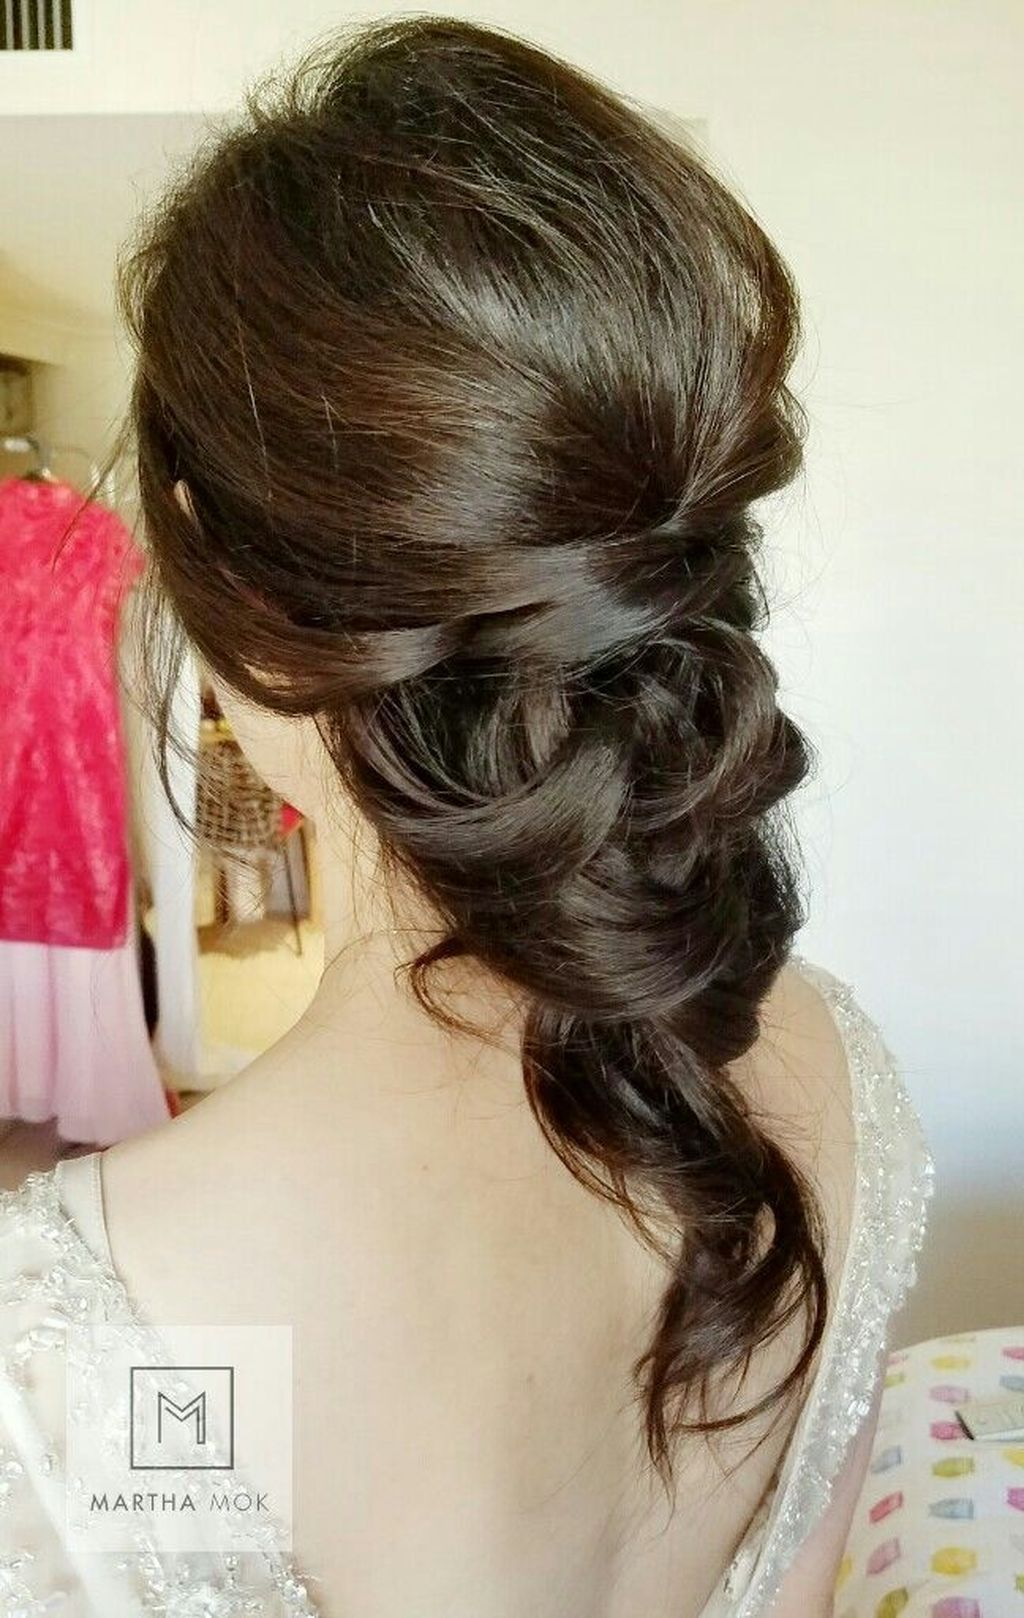 20+ pretty asian wedding updo hairstyles ideas | hairstyles